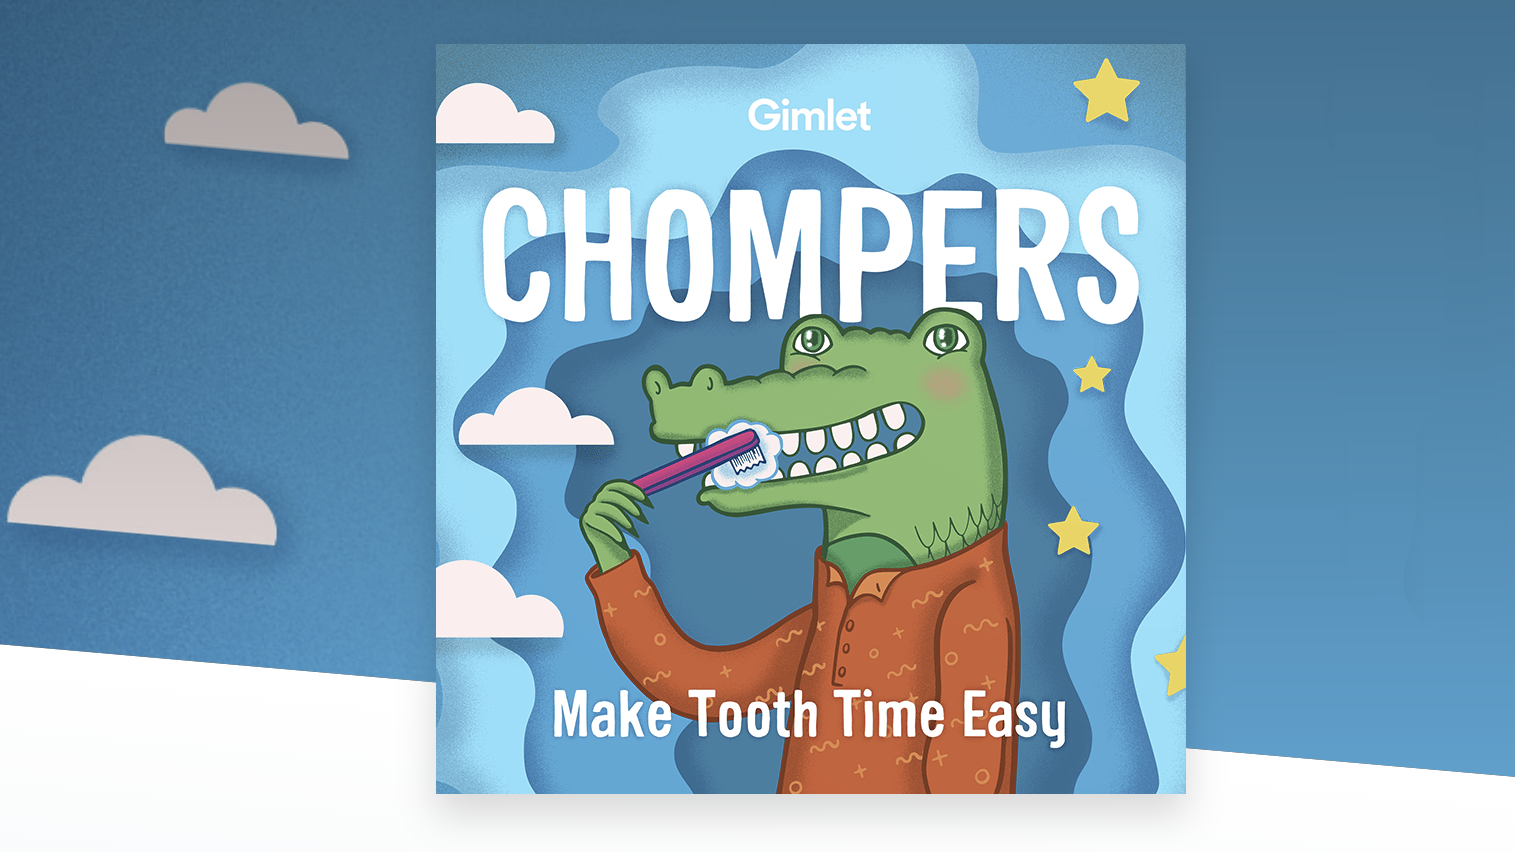 This Is The Two-Minute Tooth Brushing Podcast We've Been Waiting For